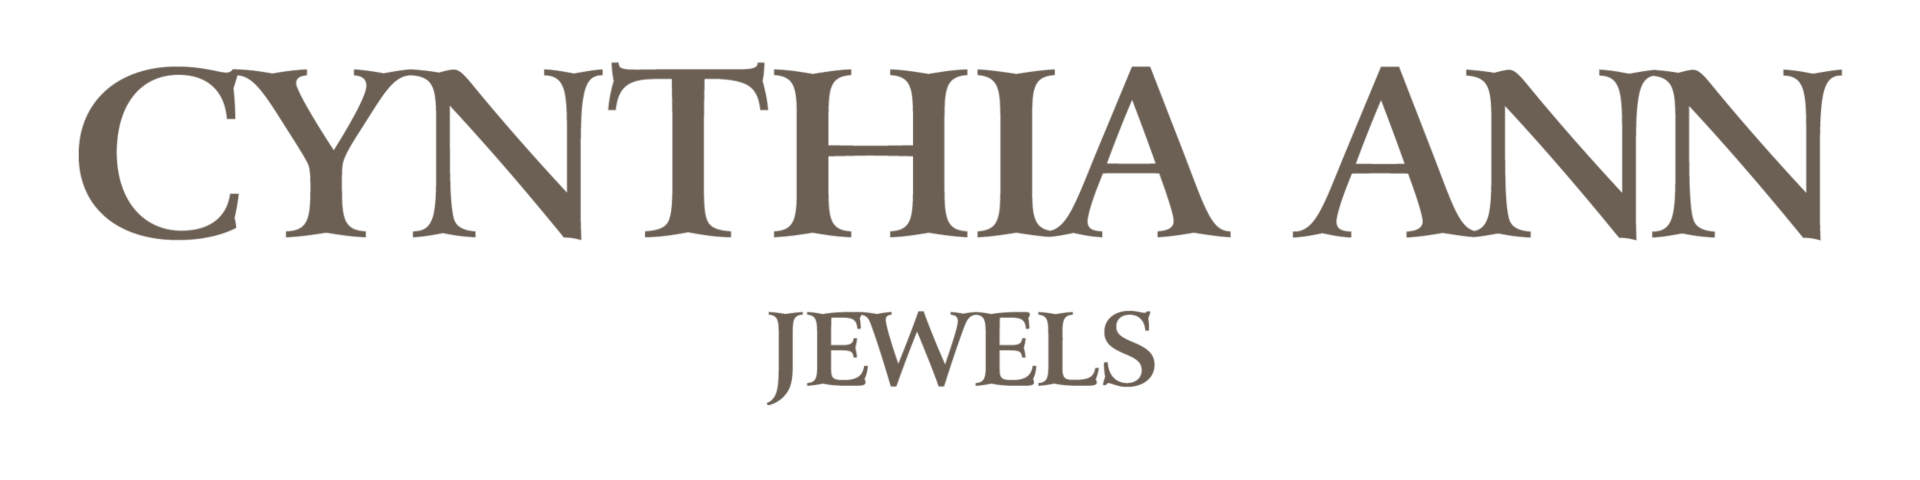 Cynthia Ann Jewels | Cynthia Ann Jewels Designer Jewelery